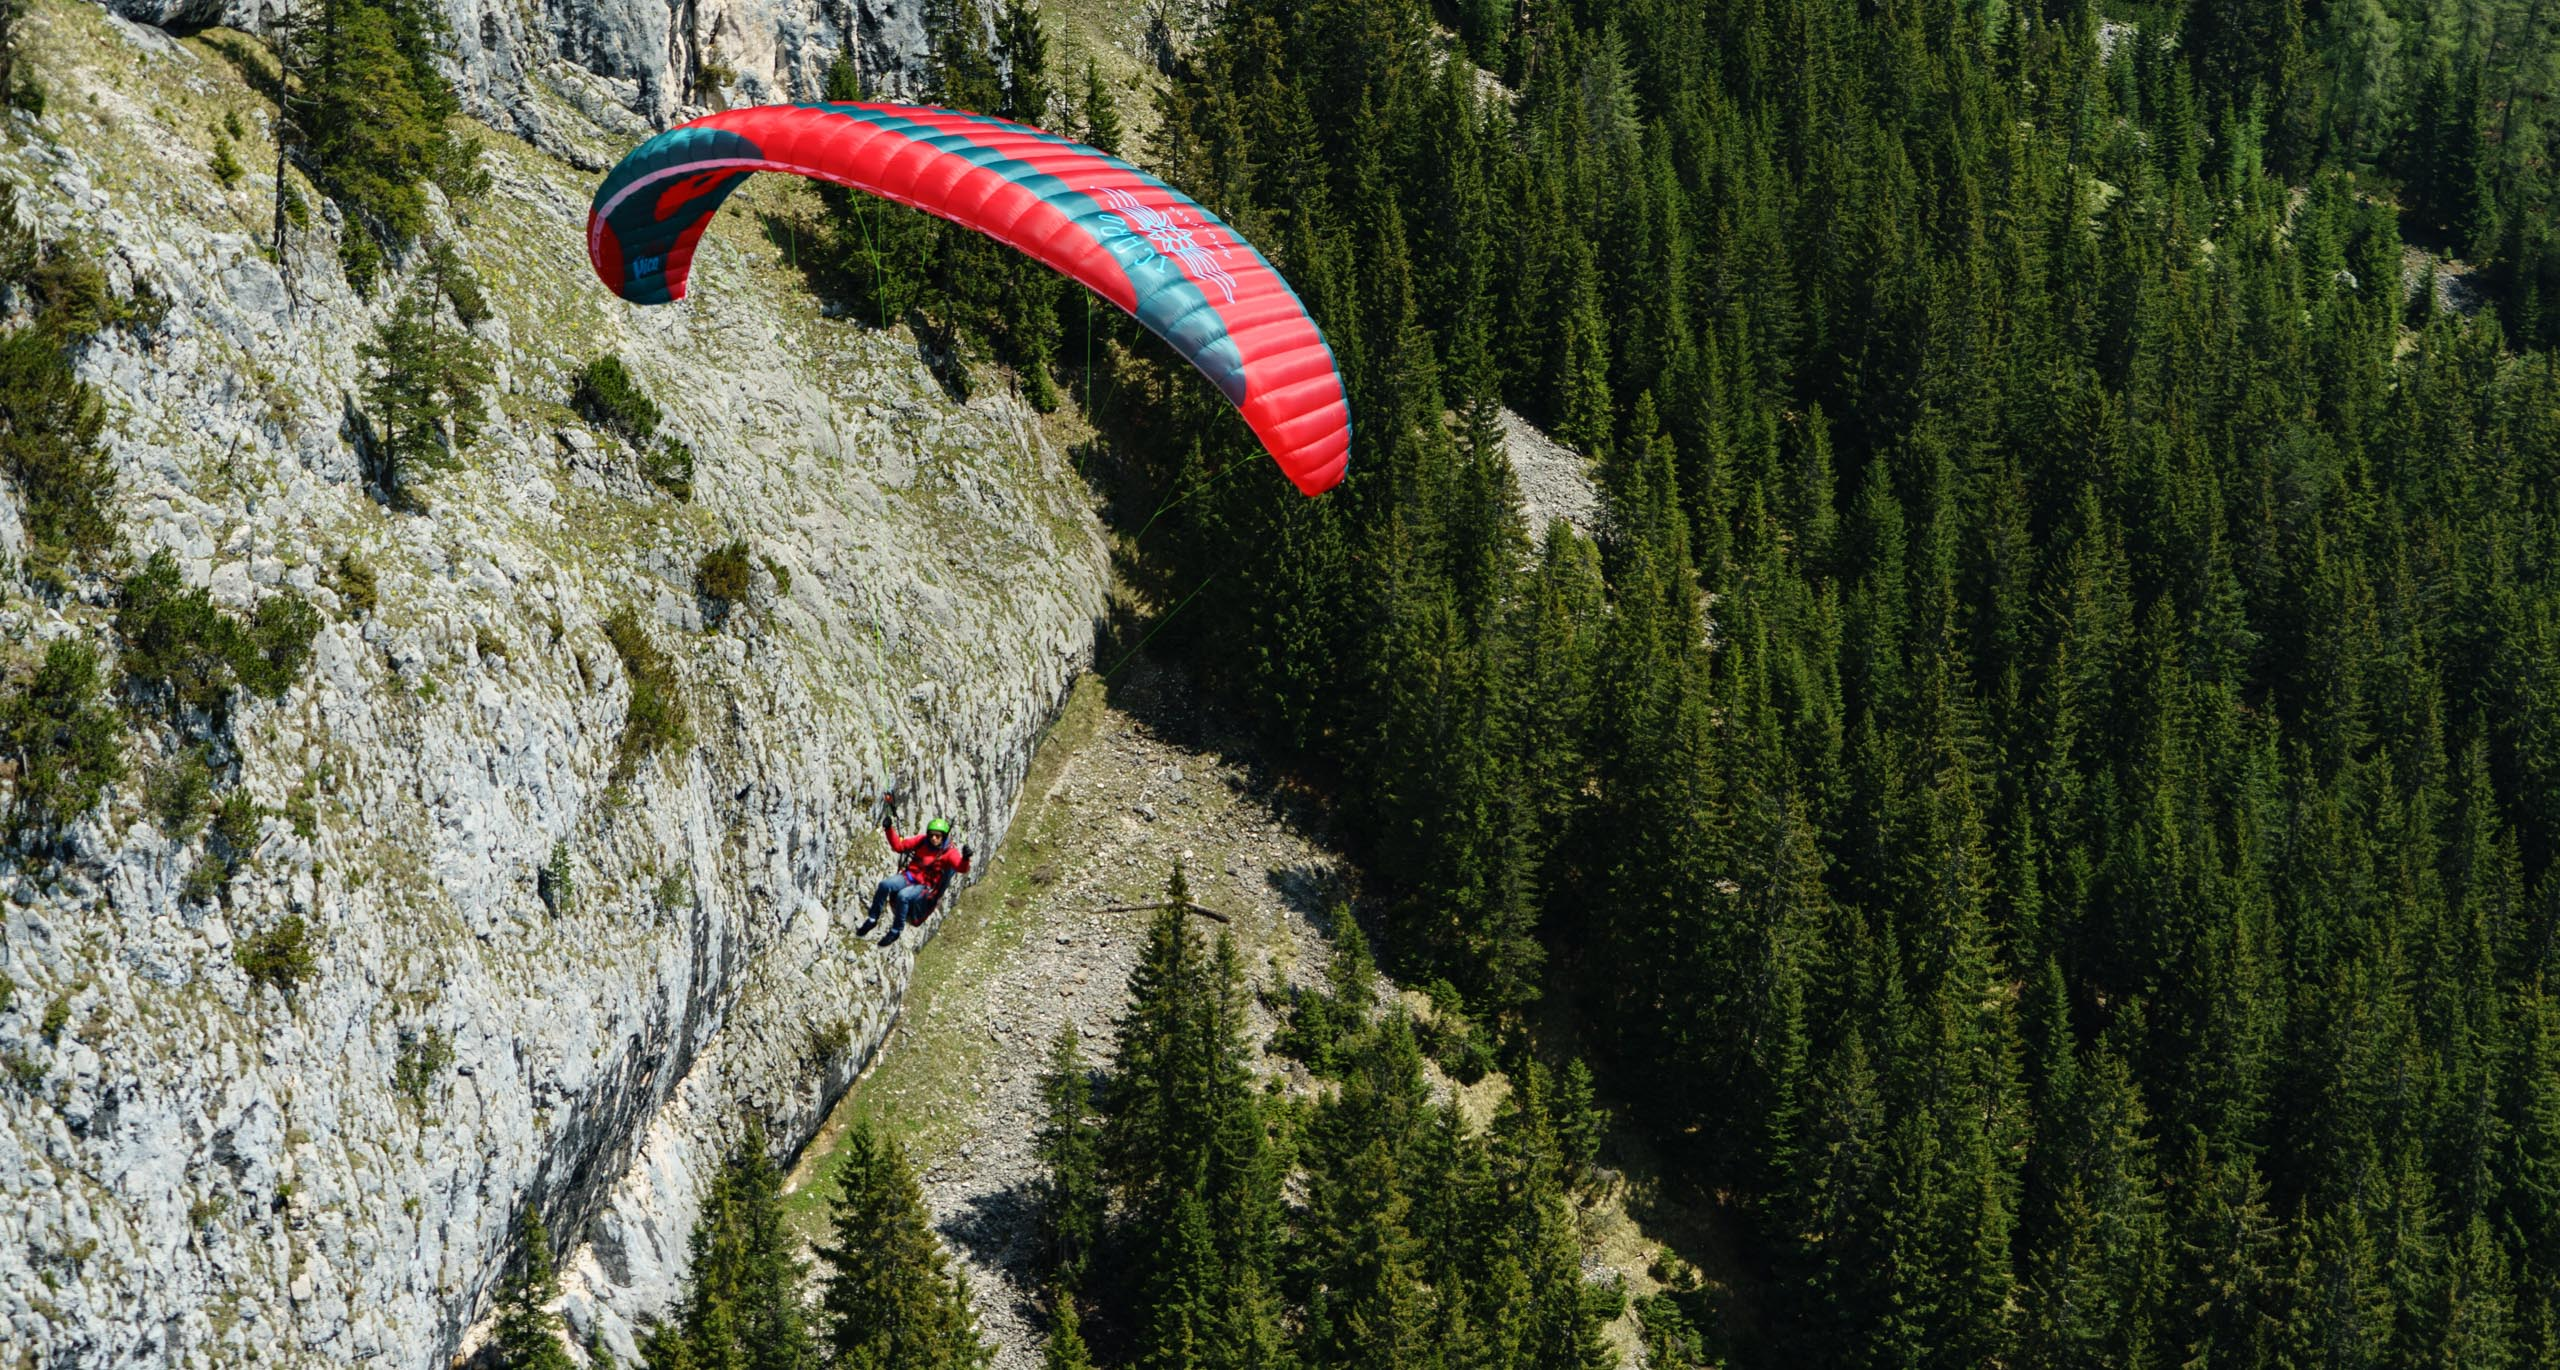 Pica Icaro Paragliders